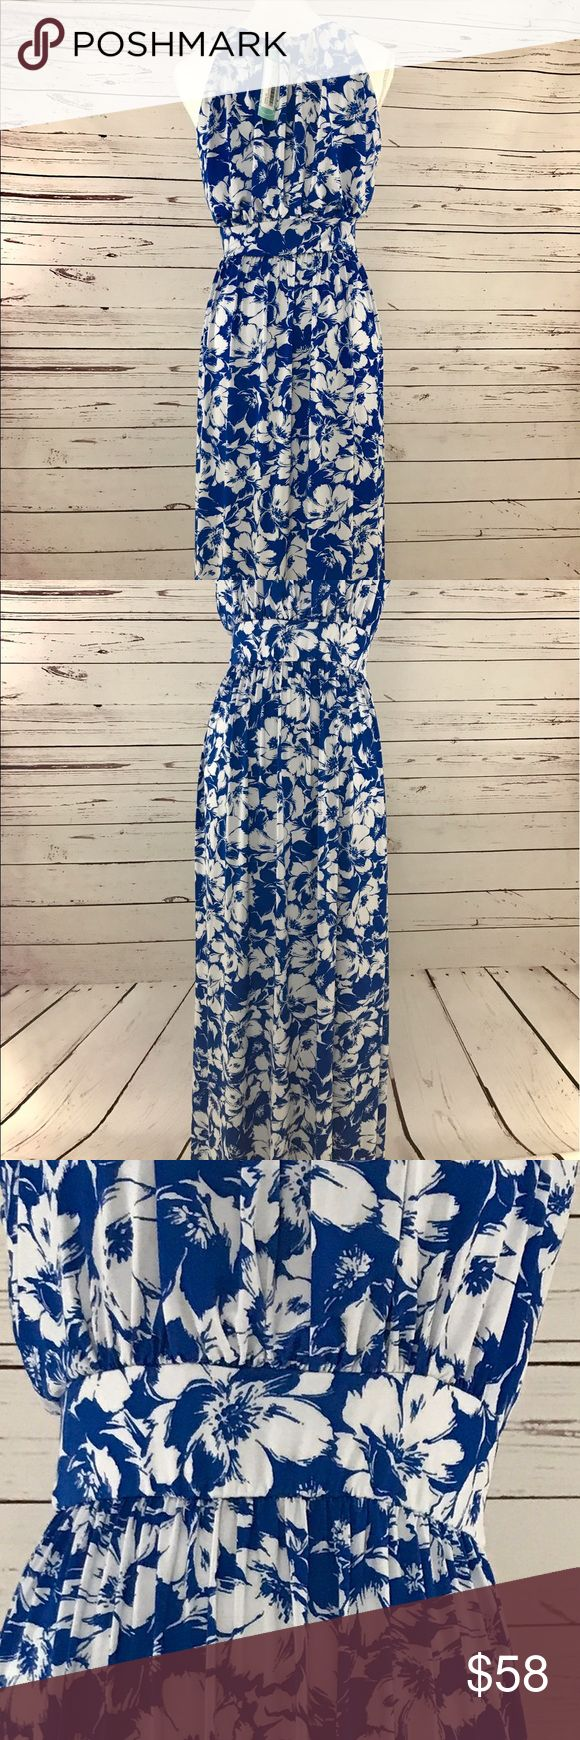 🌺🌸🌹 World traveler blue tropics ocean dress Hand picked by a stylist! Look gorgeous in this maxi dress. Exclusive made for stitchfix. Blue and white tropical design will sweep you away. Stitchfix is known for its quality and stylish items. Don't miss out on this discount! Items go fast! Dresses Maxi